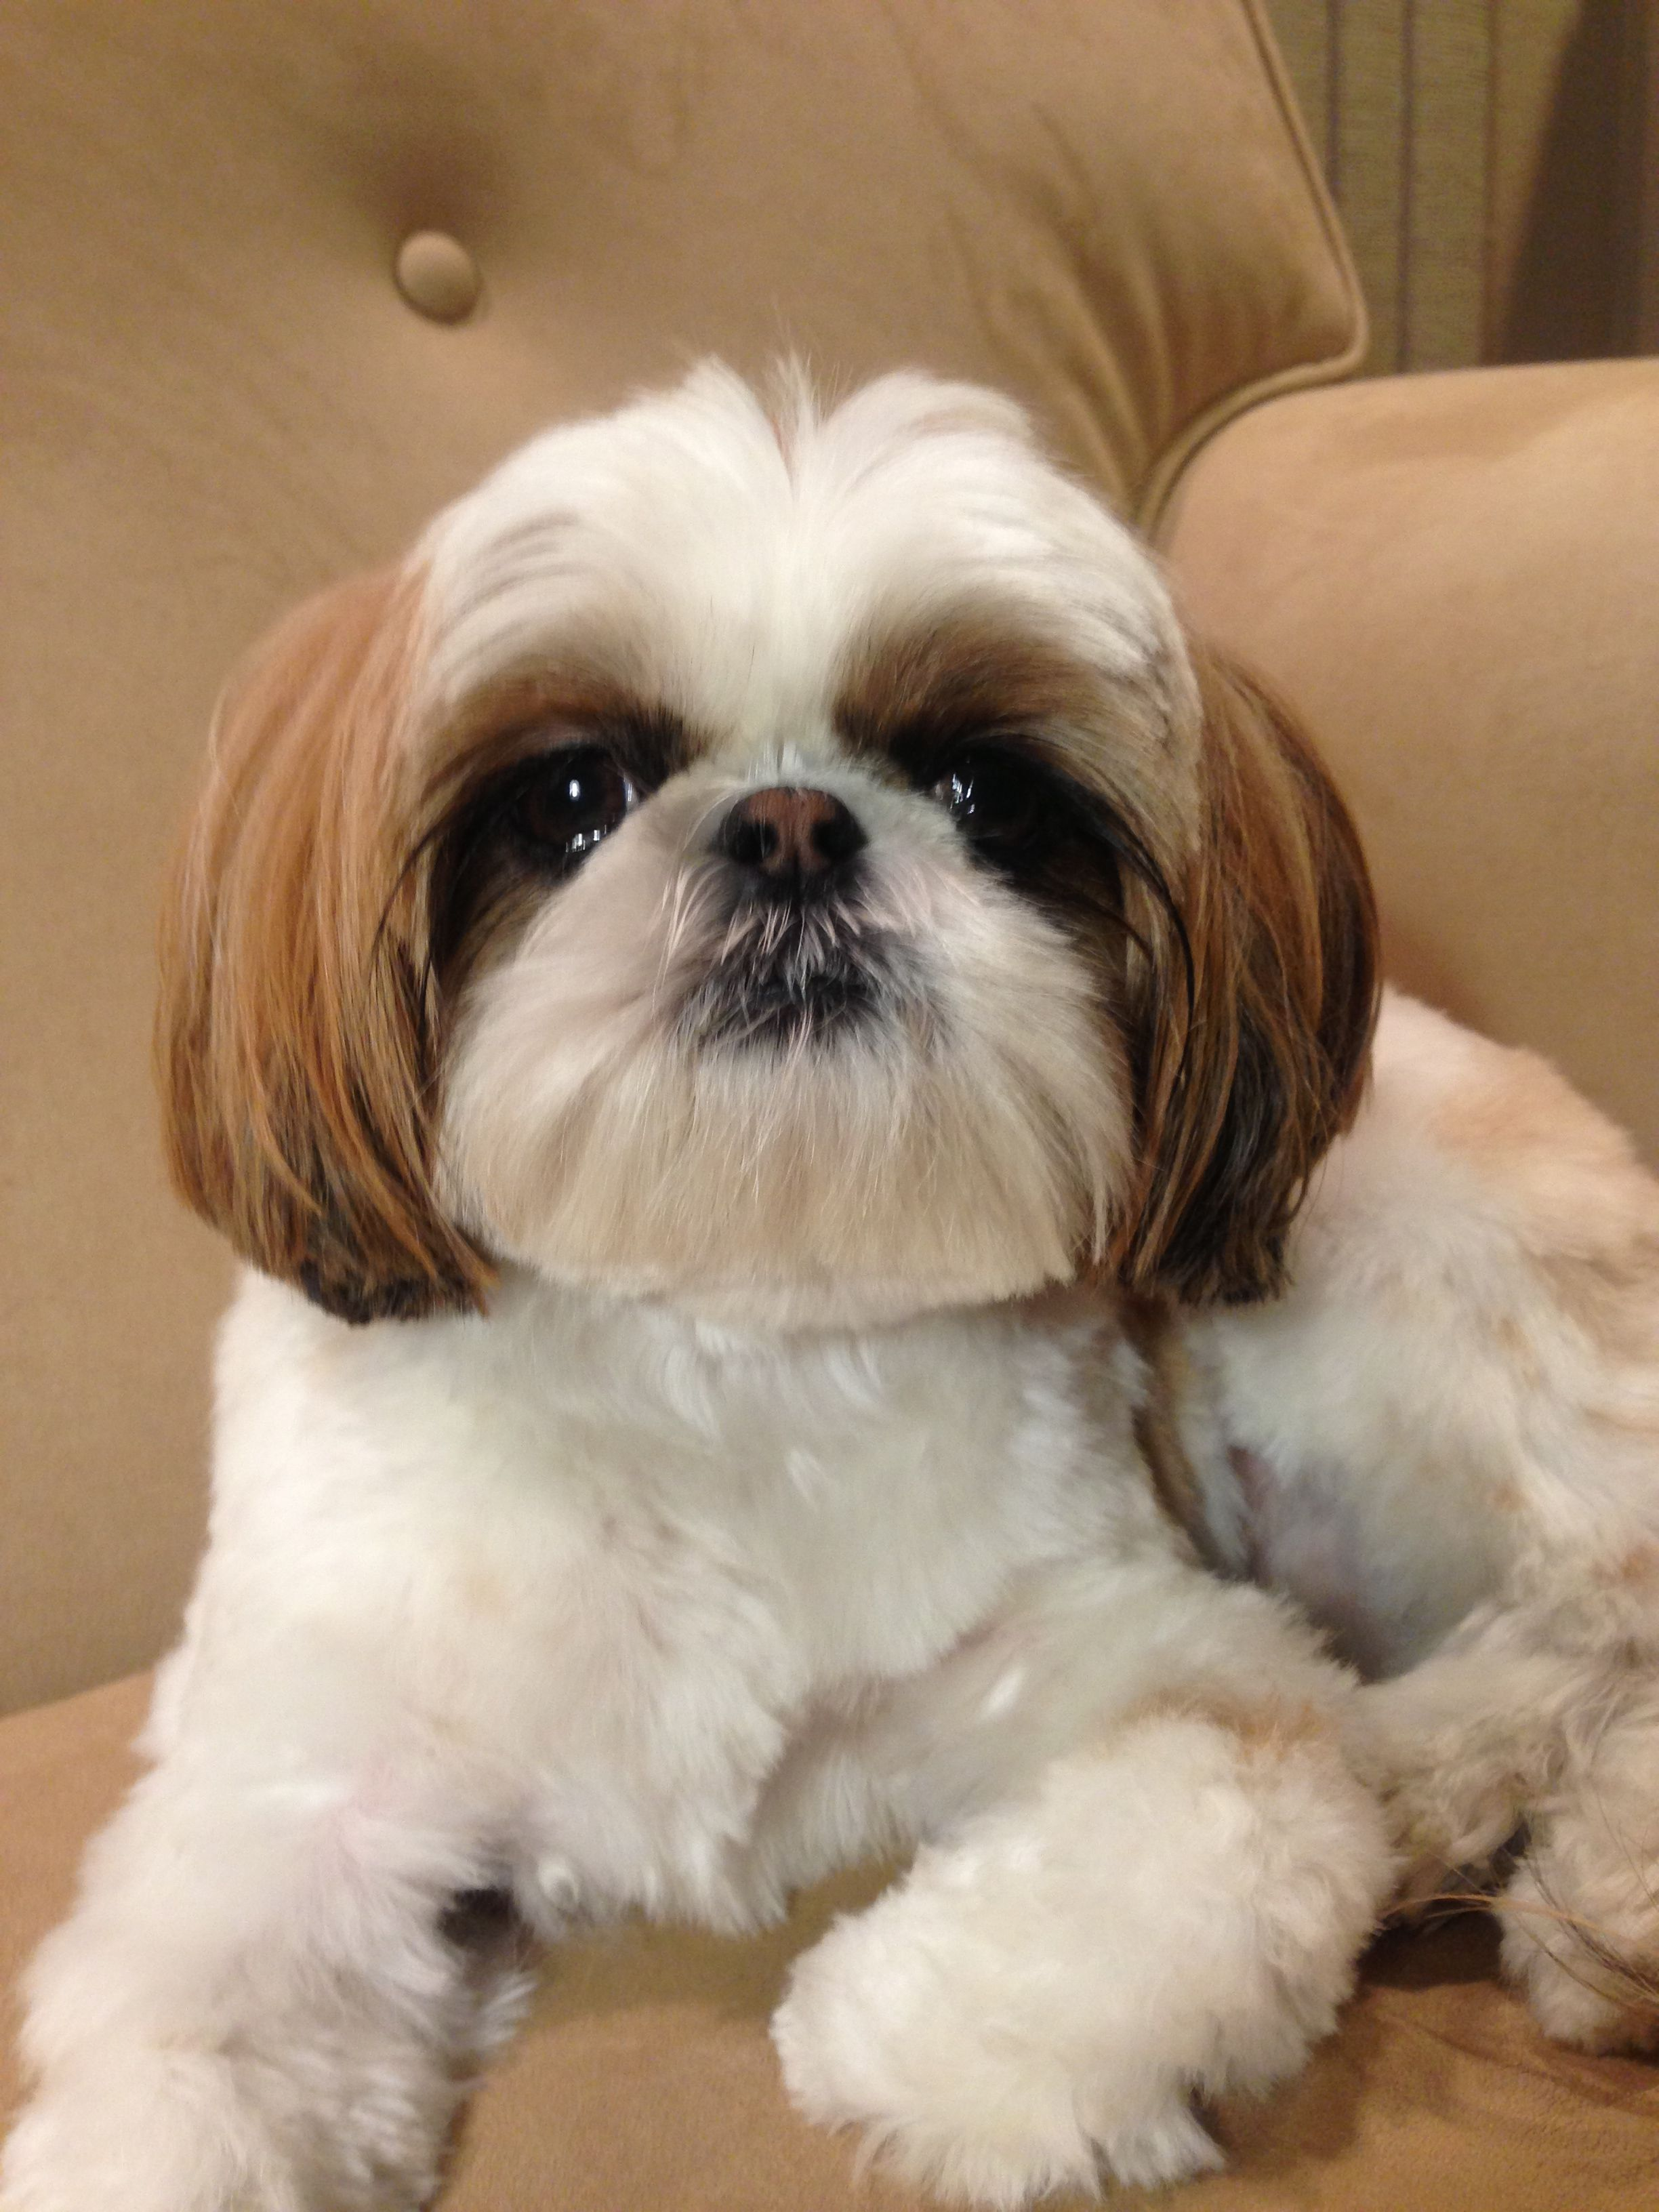 Shih Tzu Puppies, « Puppies for sale Dogs for sale